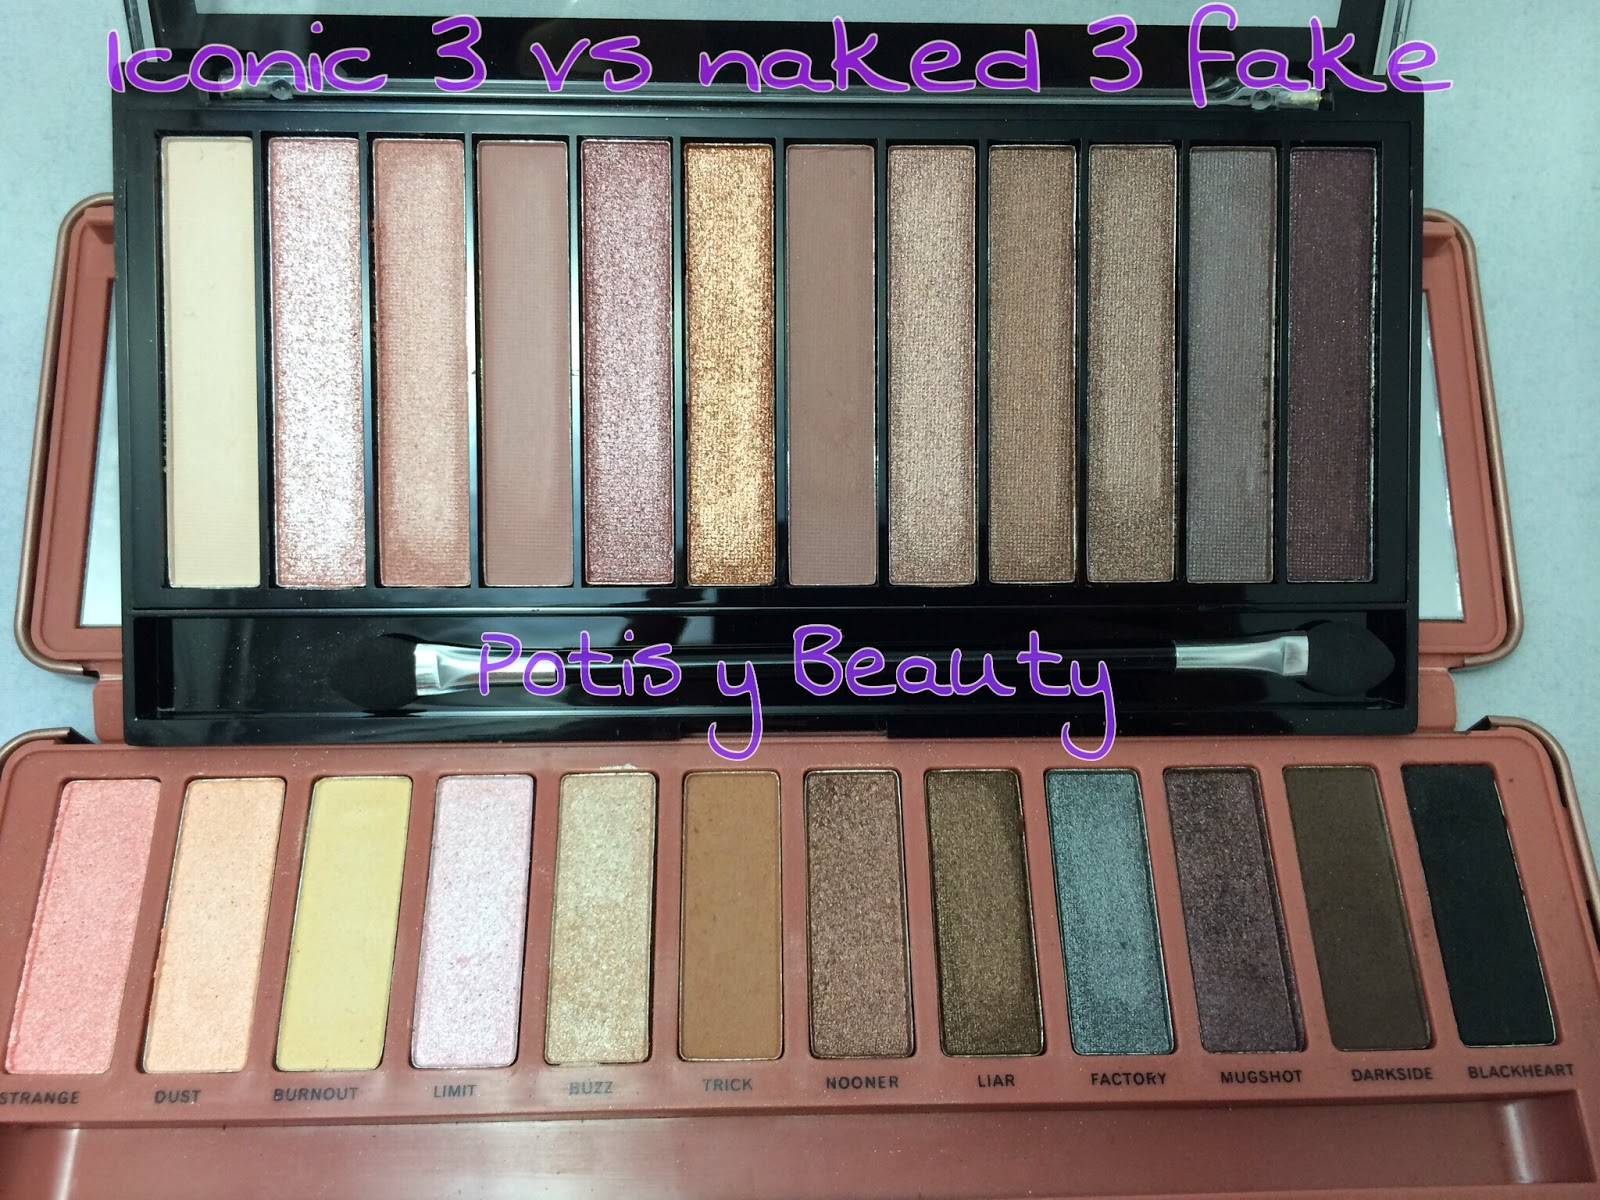 Comparativa iconic 3 vs naked 3 fake